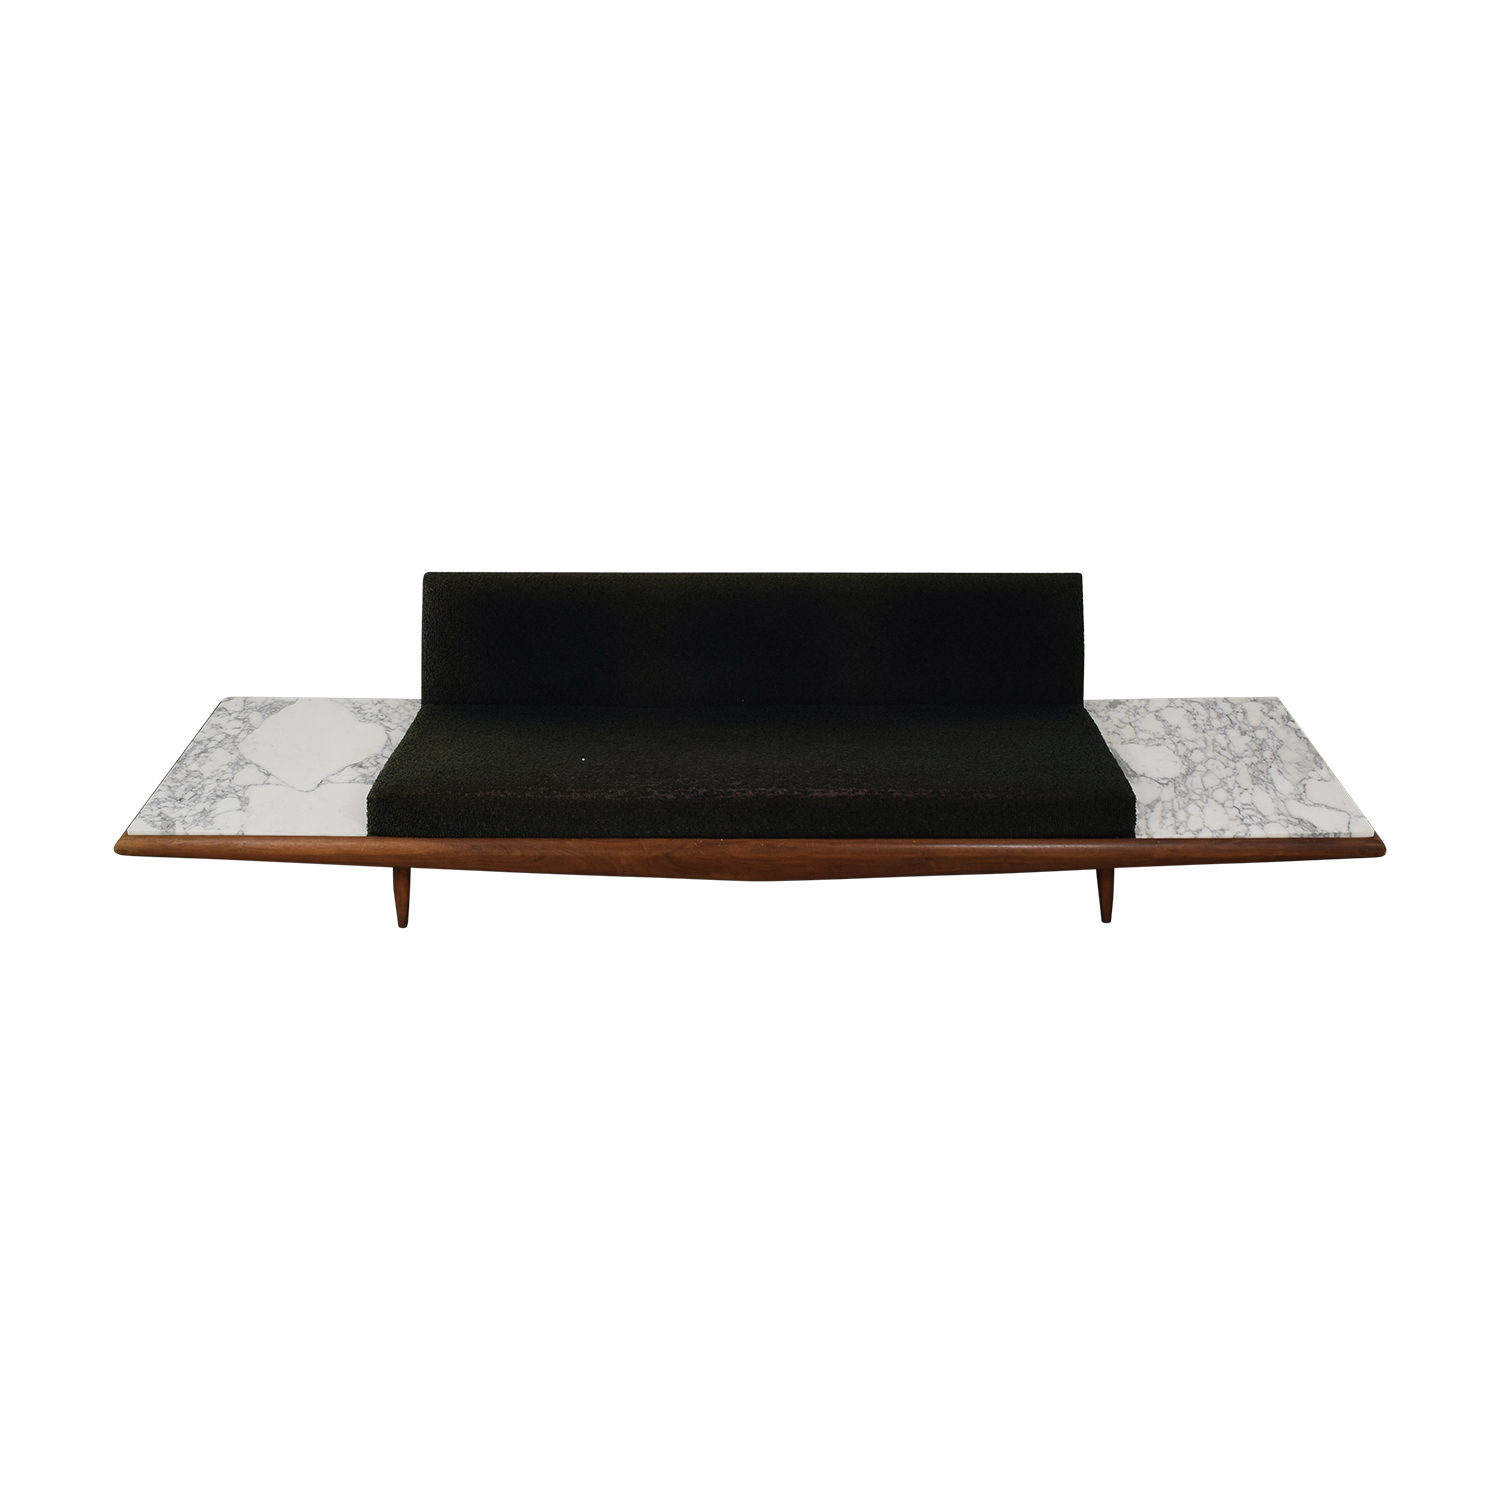 Awe Inspiring 75 Off Craft Associates Craft Associates By Adrian Pearsall Floating Platform Sofa With Carrara Marble Side Tables Sofas Caraccident5 Cool Chair Designs And Ideas Caraccident5Info